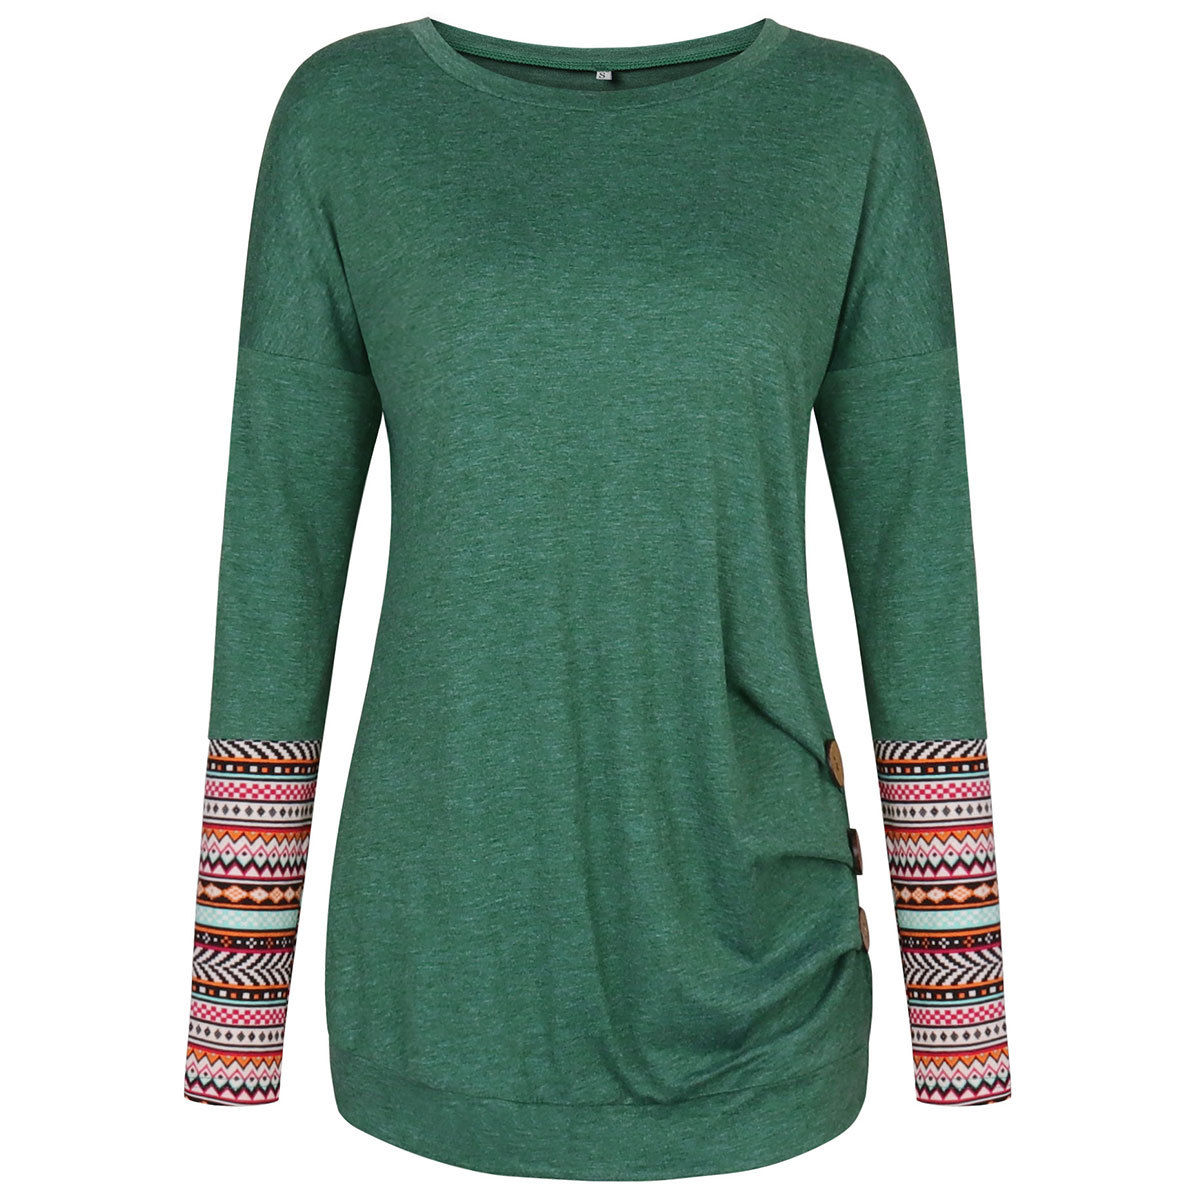 Women Black Top Fashion Button Pleated Long Sleeve T Shirts Brand 2019 Autumn Spring T shirt Casual O Neck Lady Top Green Grey in T Shirts from Women 39 s Clothing